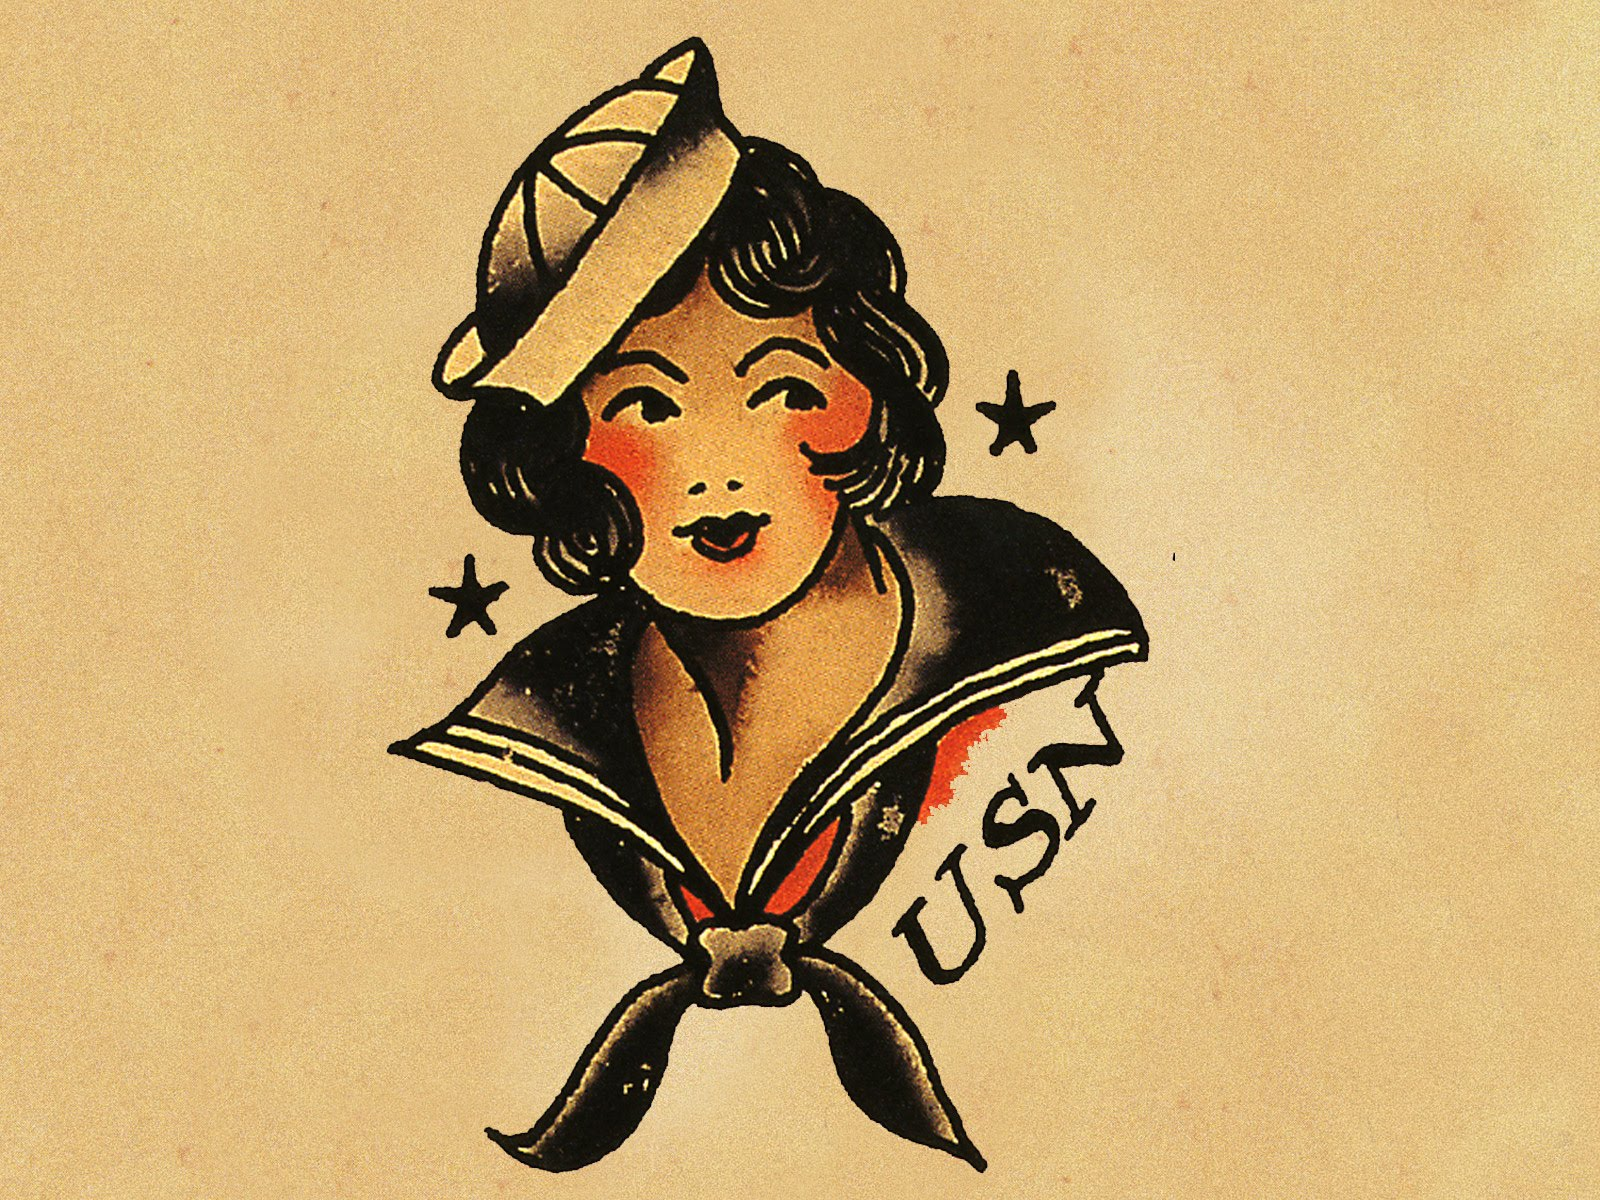 Sailor jerry graphic free library 25 Sailor Jerry Tattoos to Rock Your World graphic free library